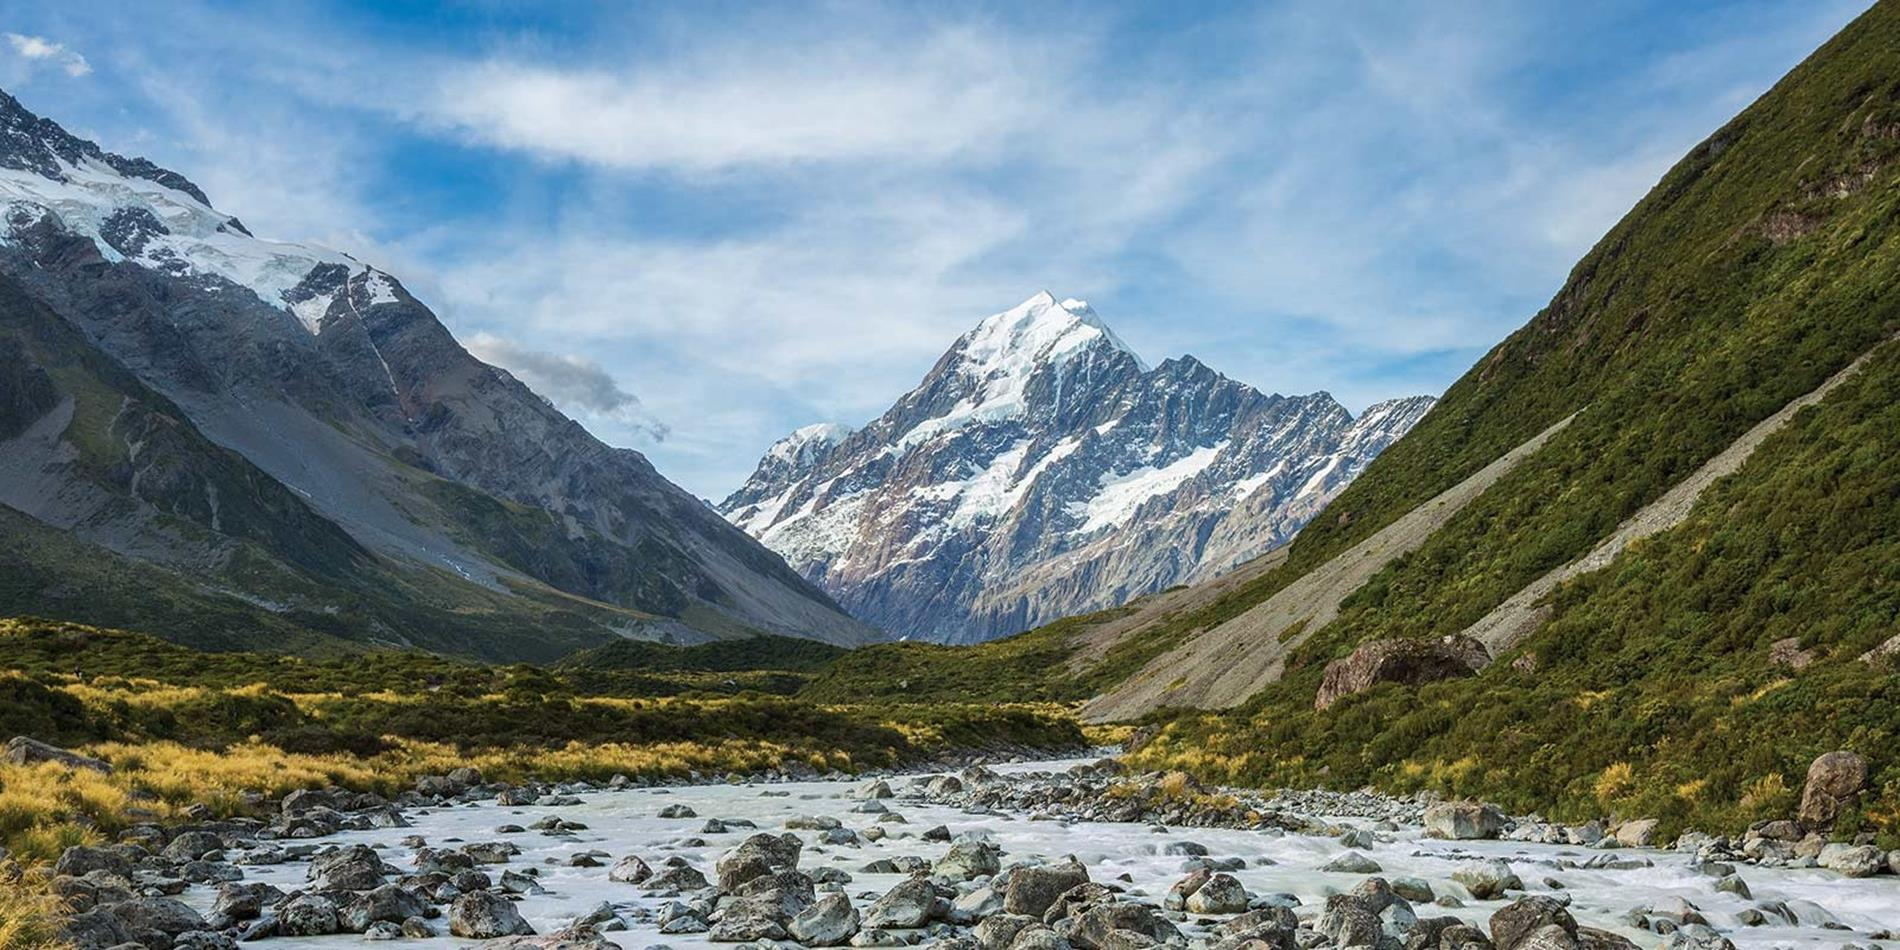 View from the valley looking up towards huge snow capped mountain, New Zealand